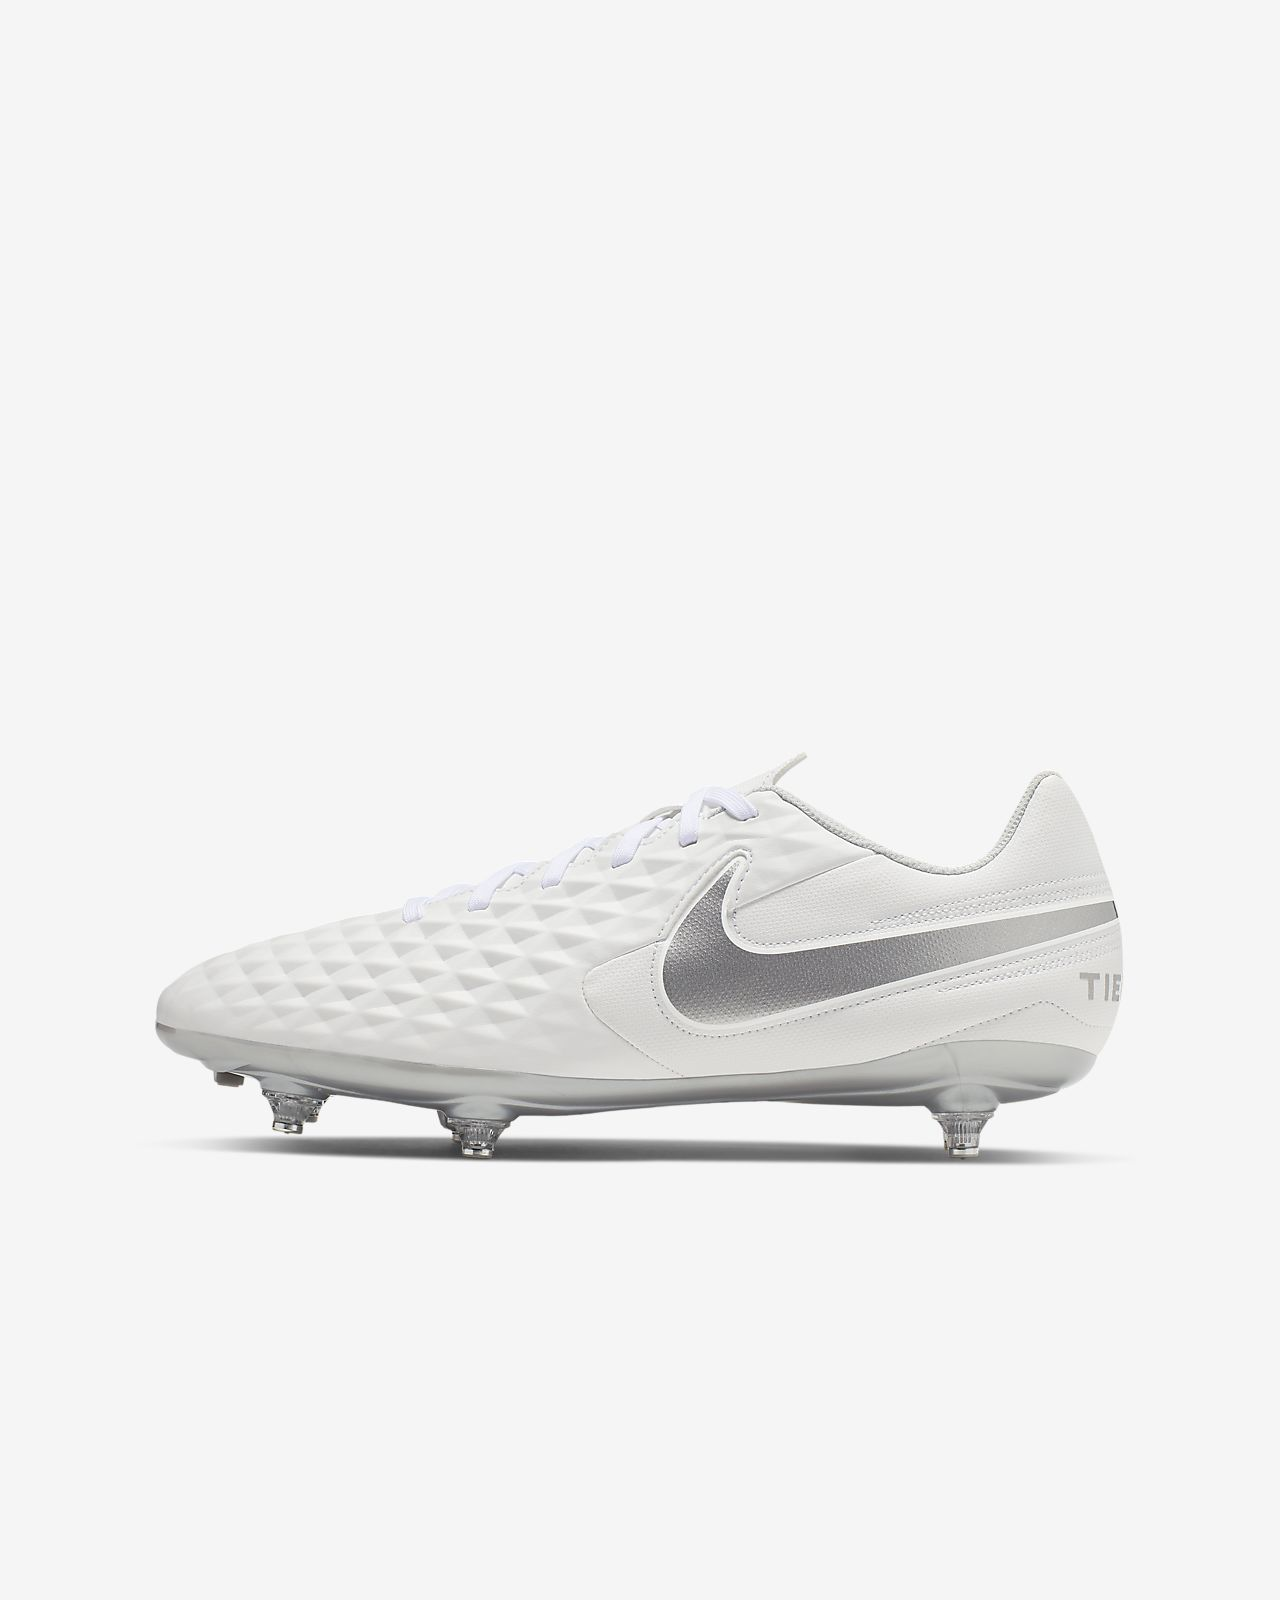 Nike Tiempo Legend 8 Club SG Soft-Ground Football Boot